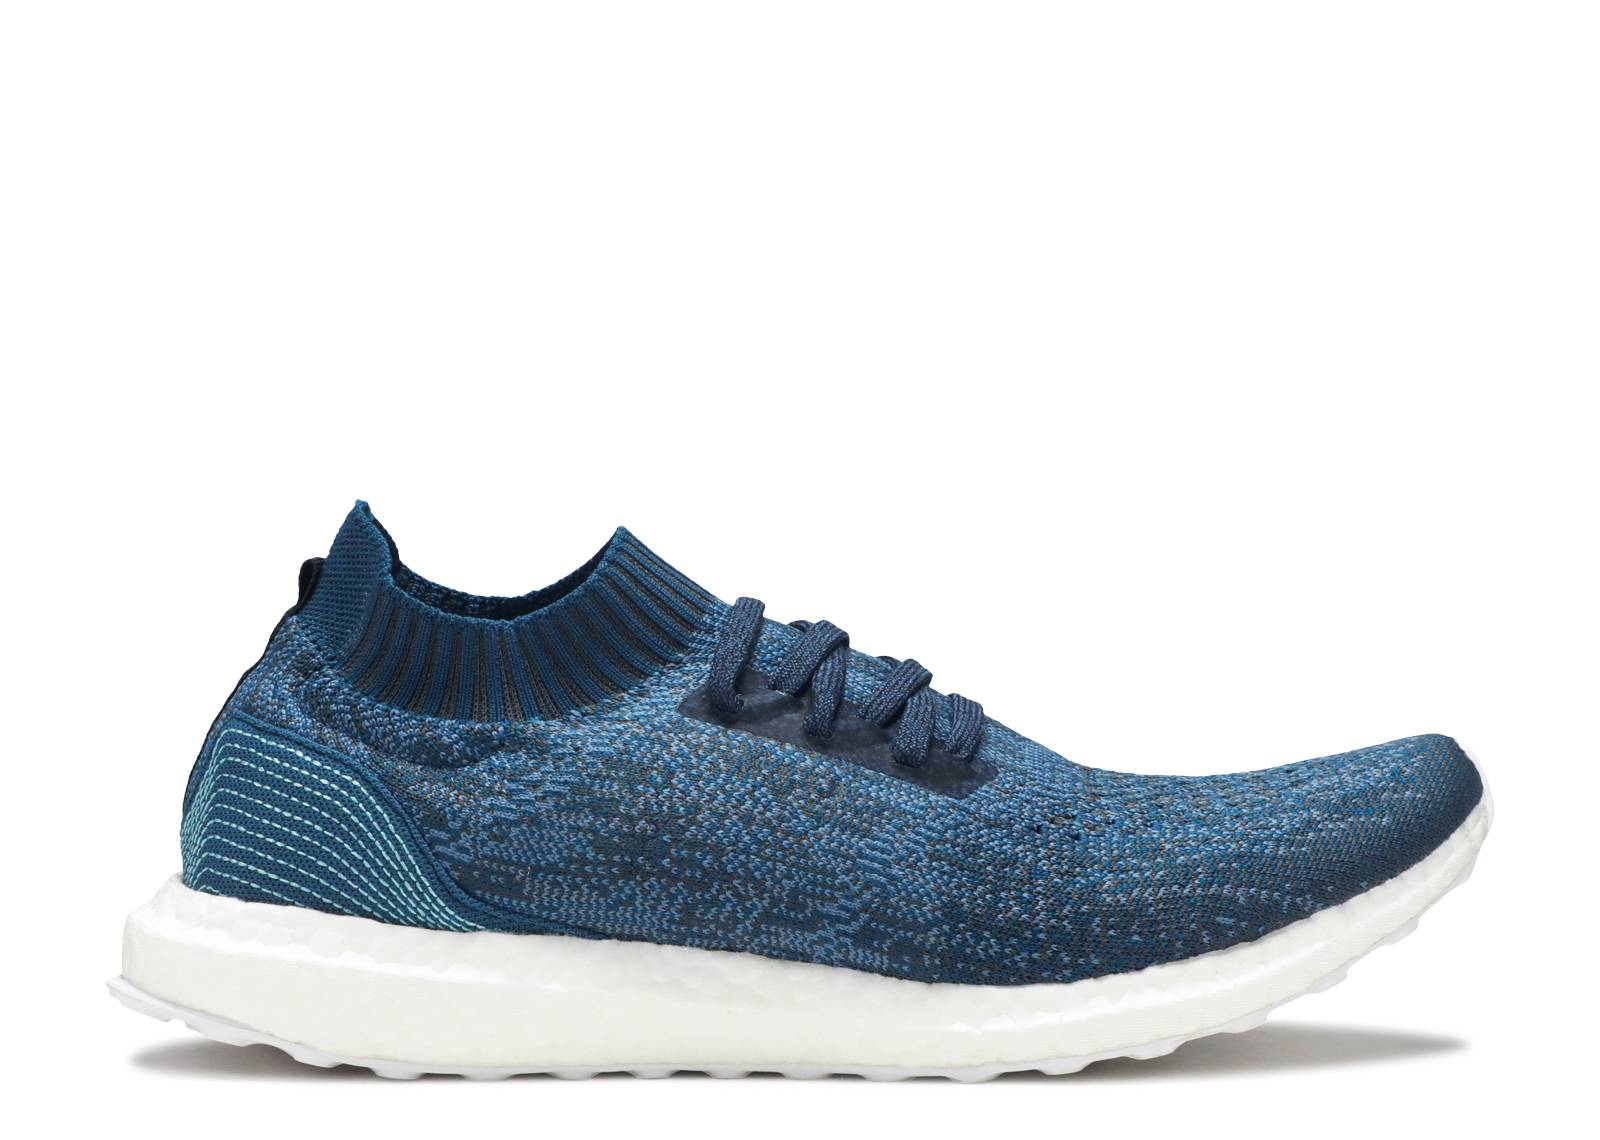 c80c8336f UltraBoost Uncaged